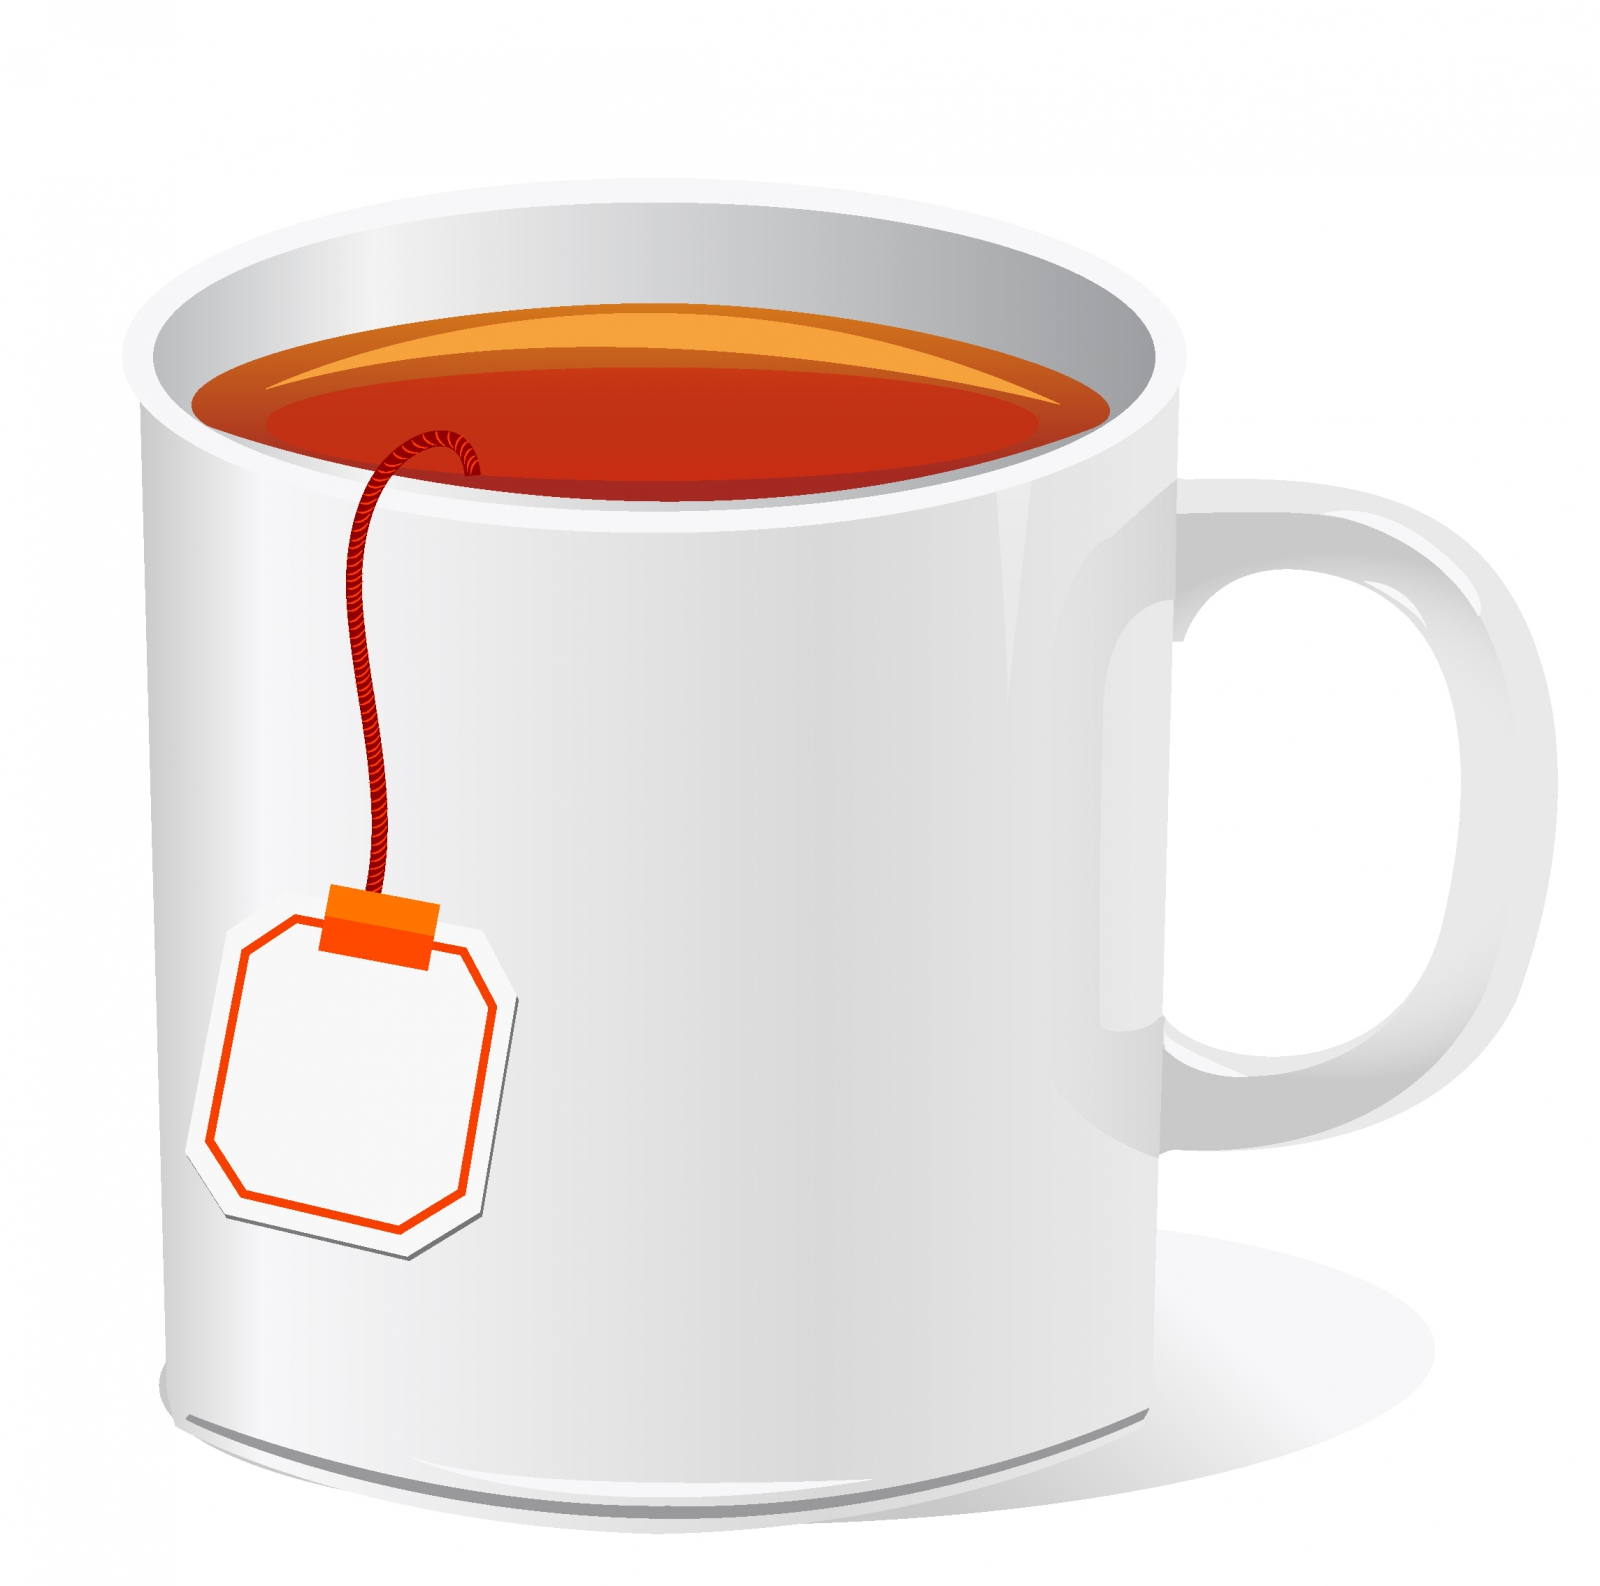 Mug Of Tea Clipart.